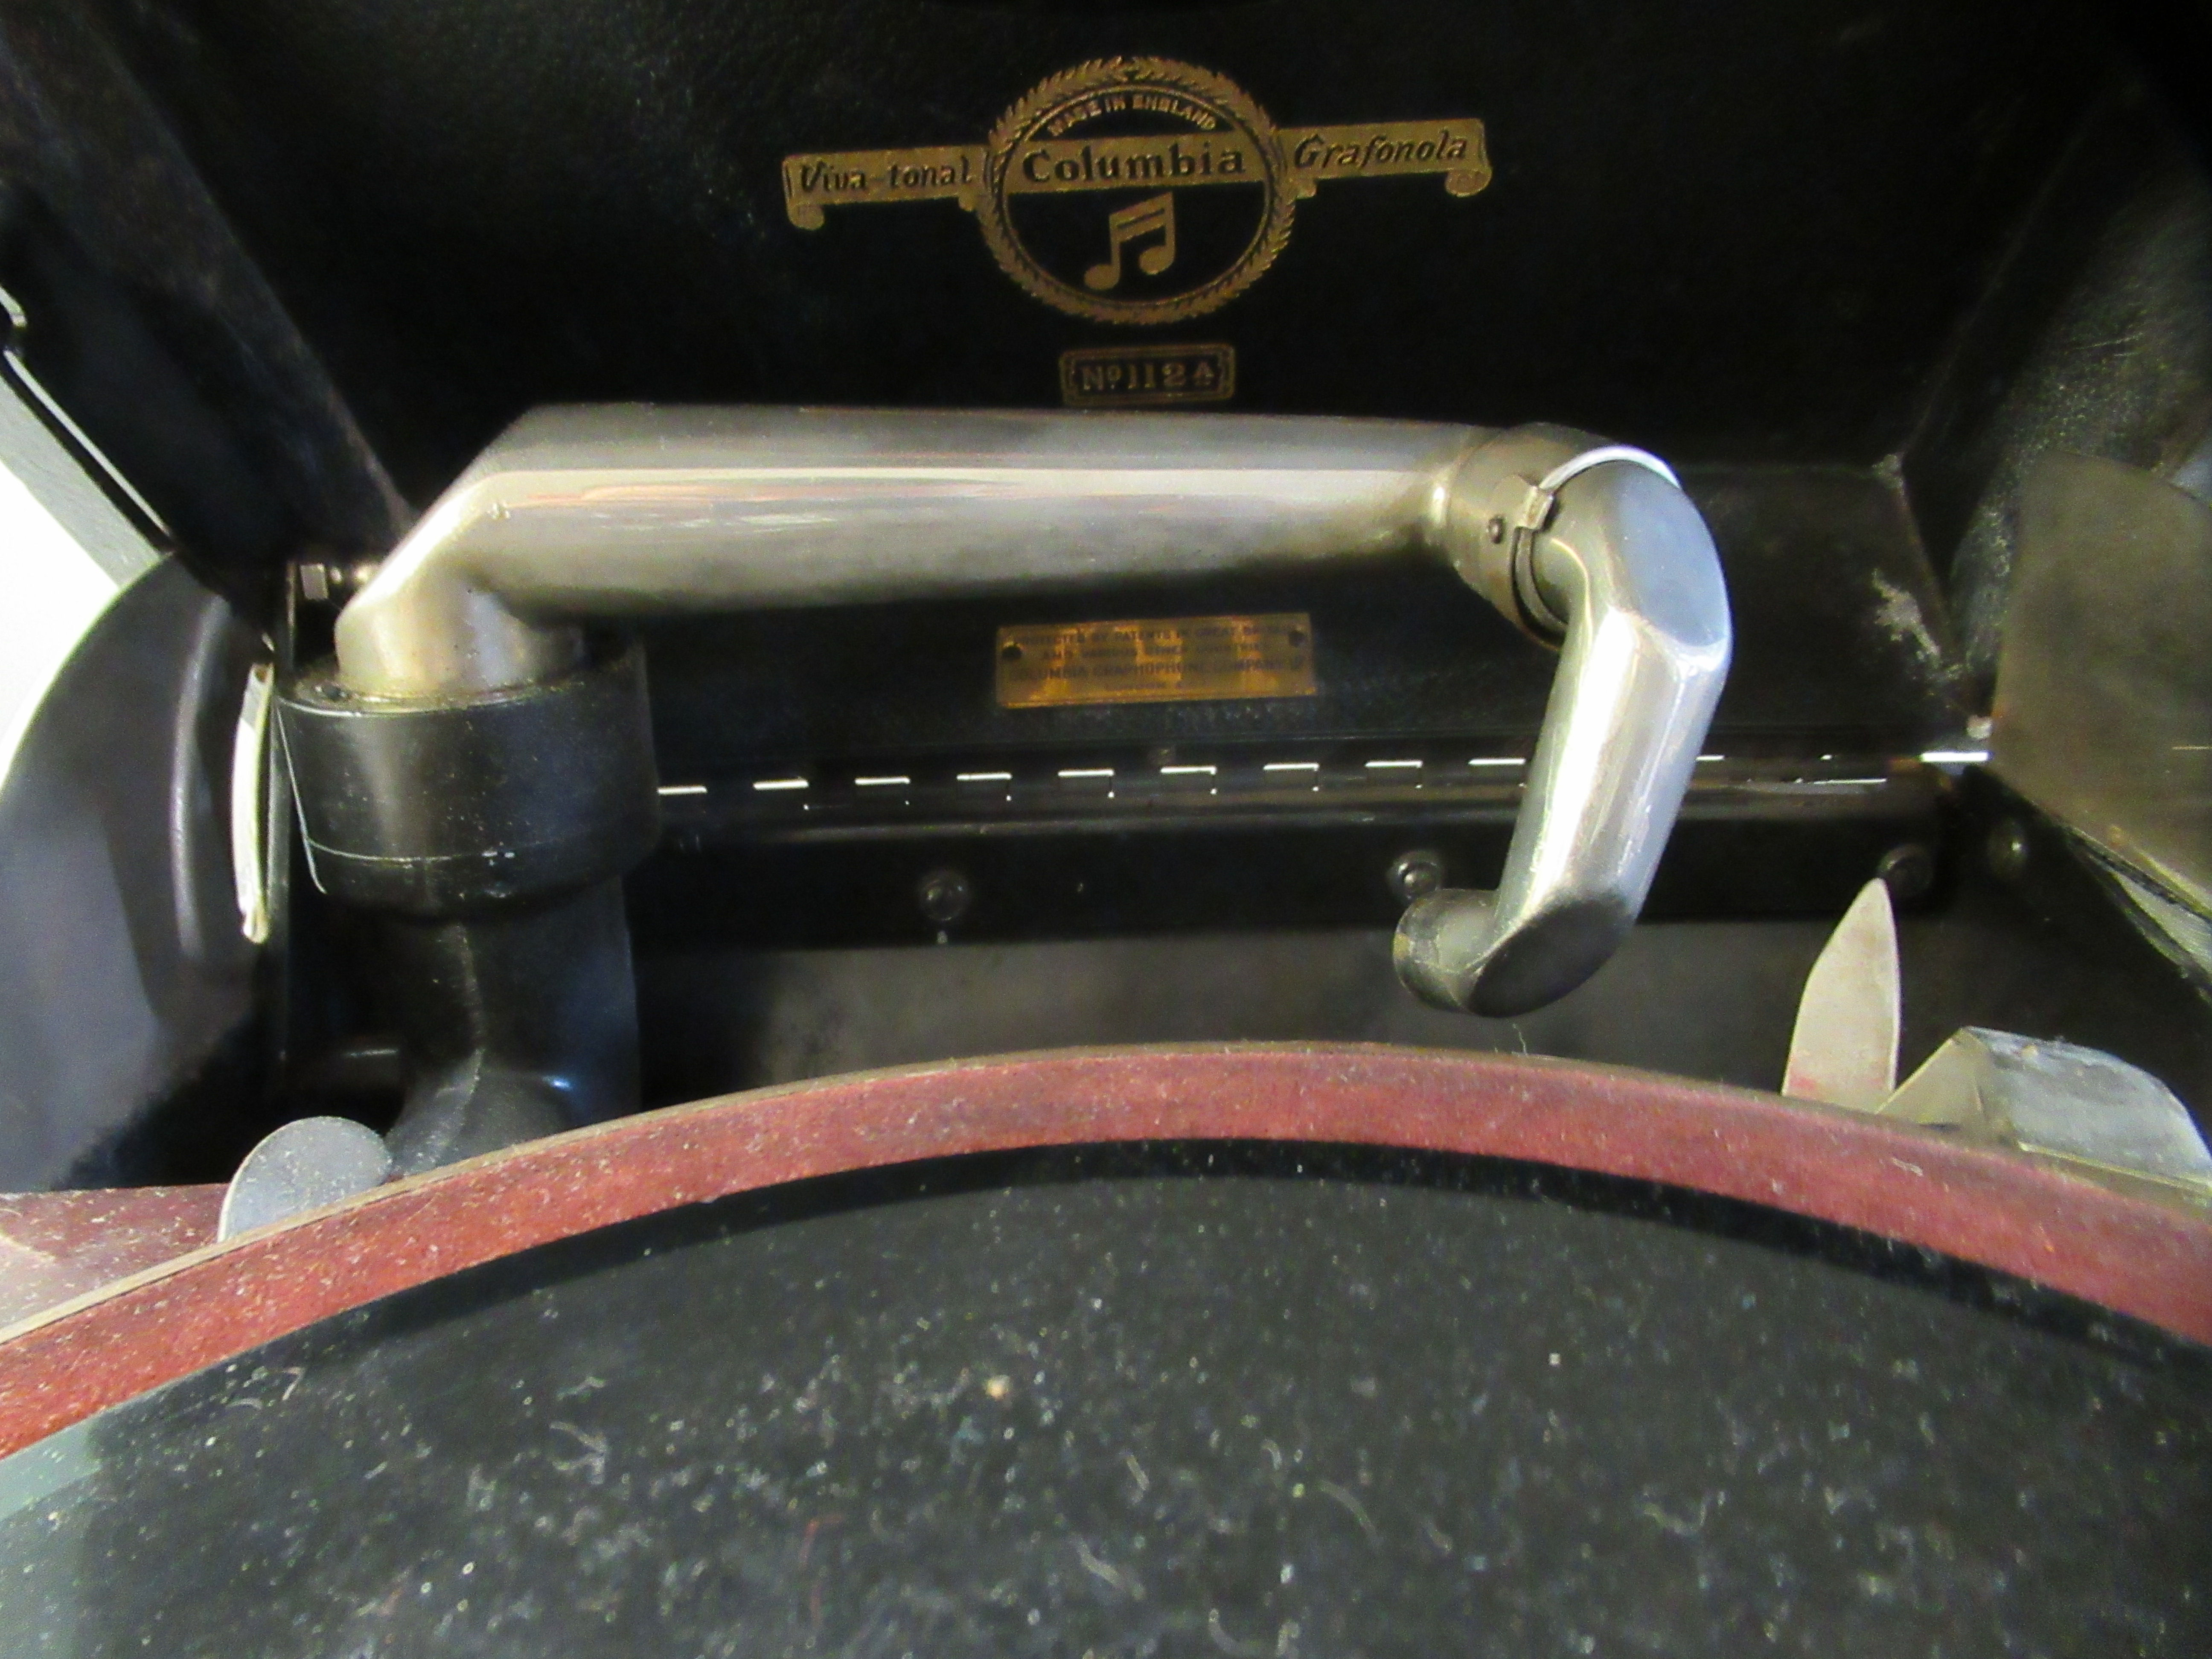 A 1930s Columbia portable gramophone with a folding handle, in a black fabric covered case - Image 4 of 5